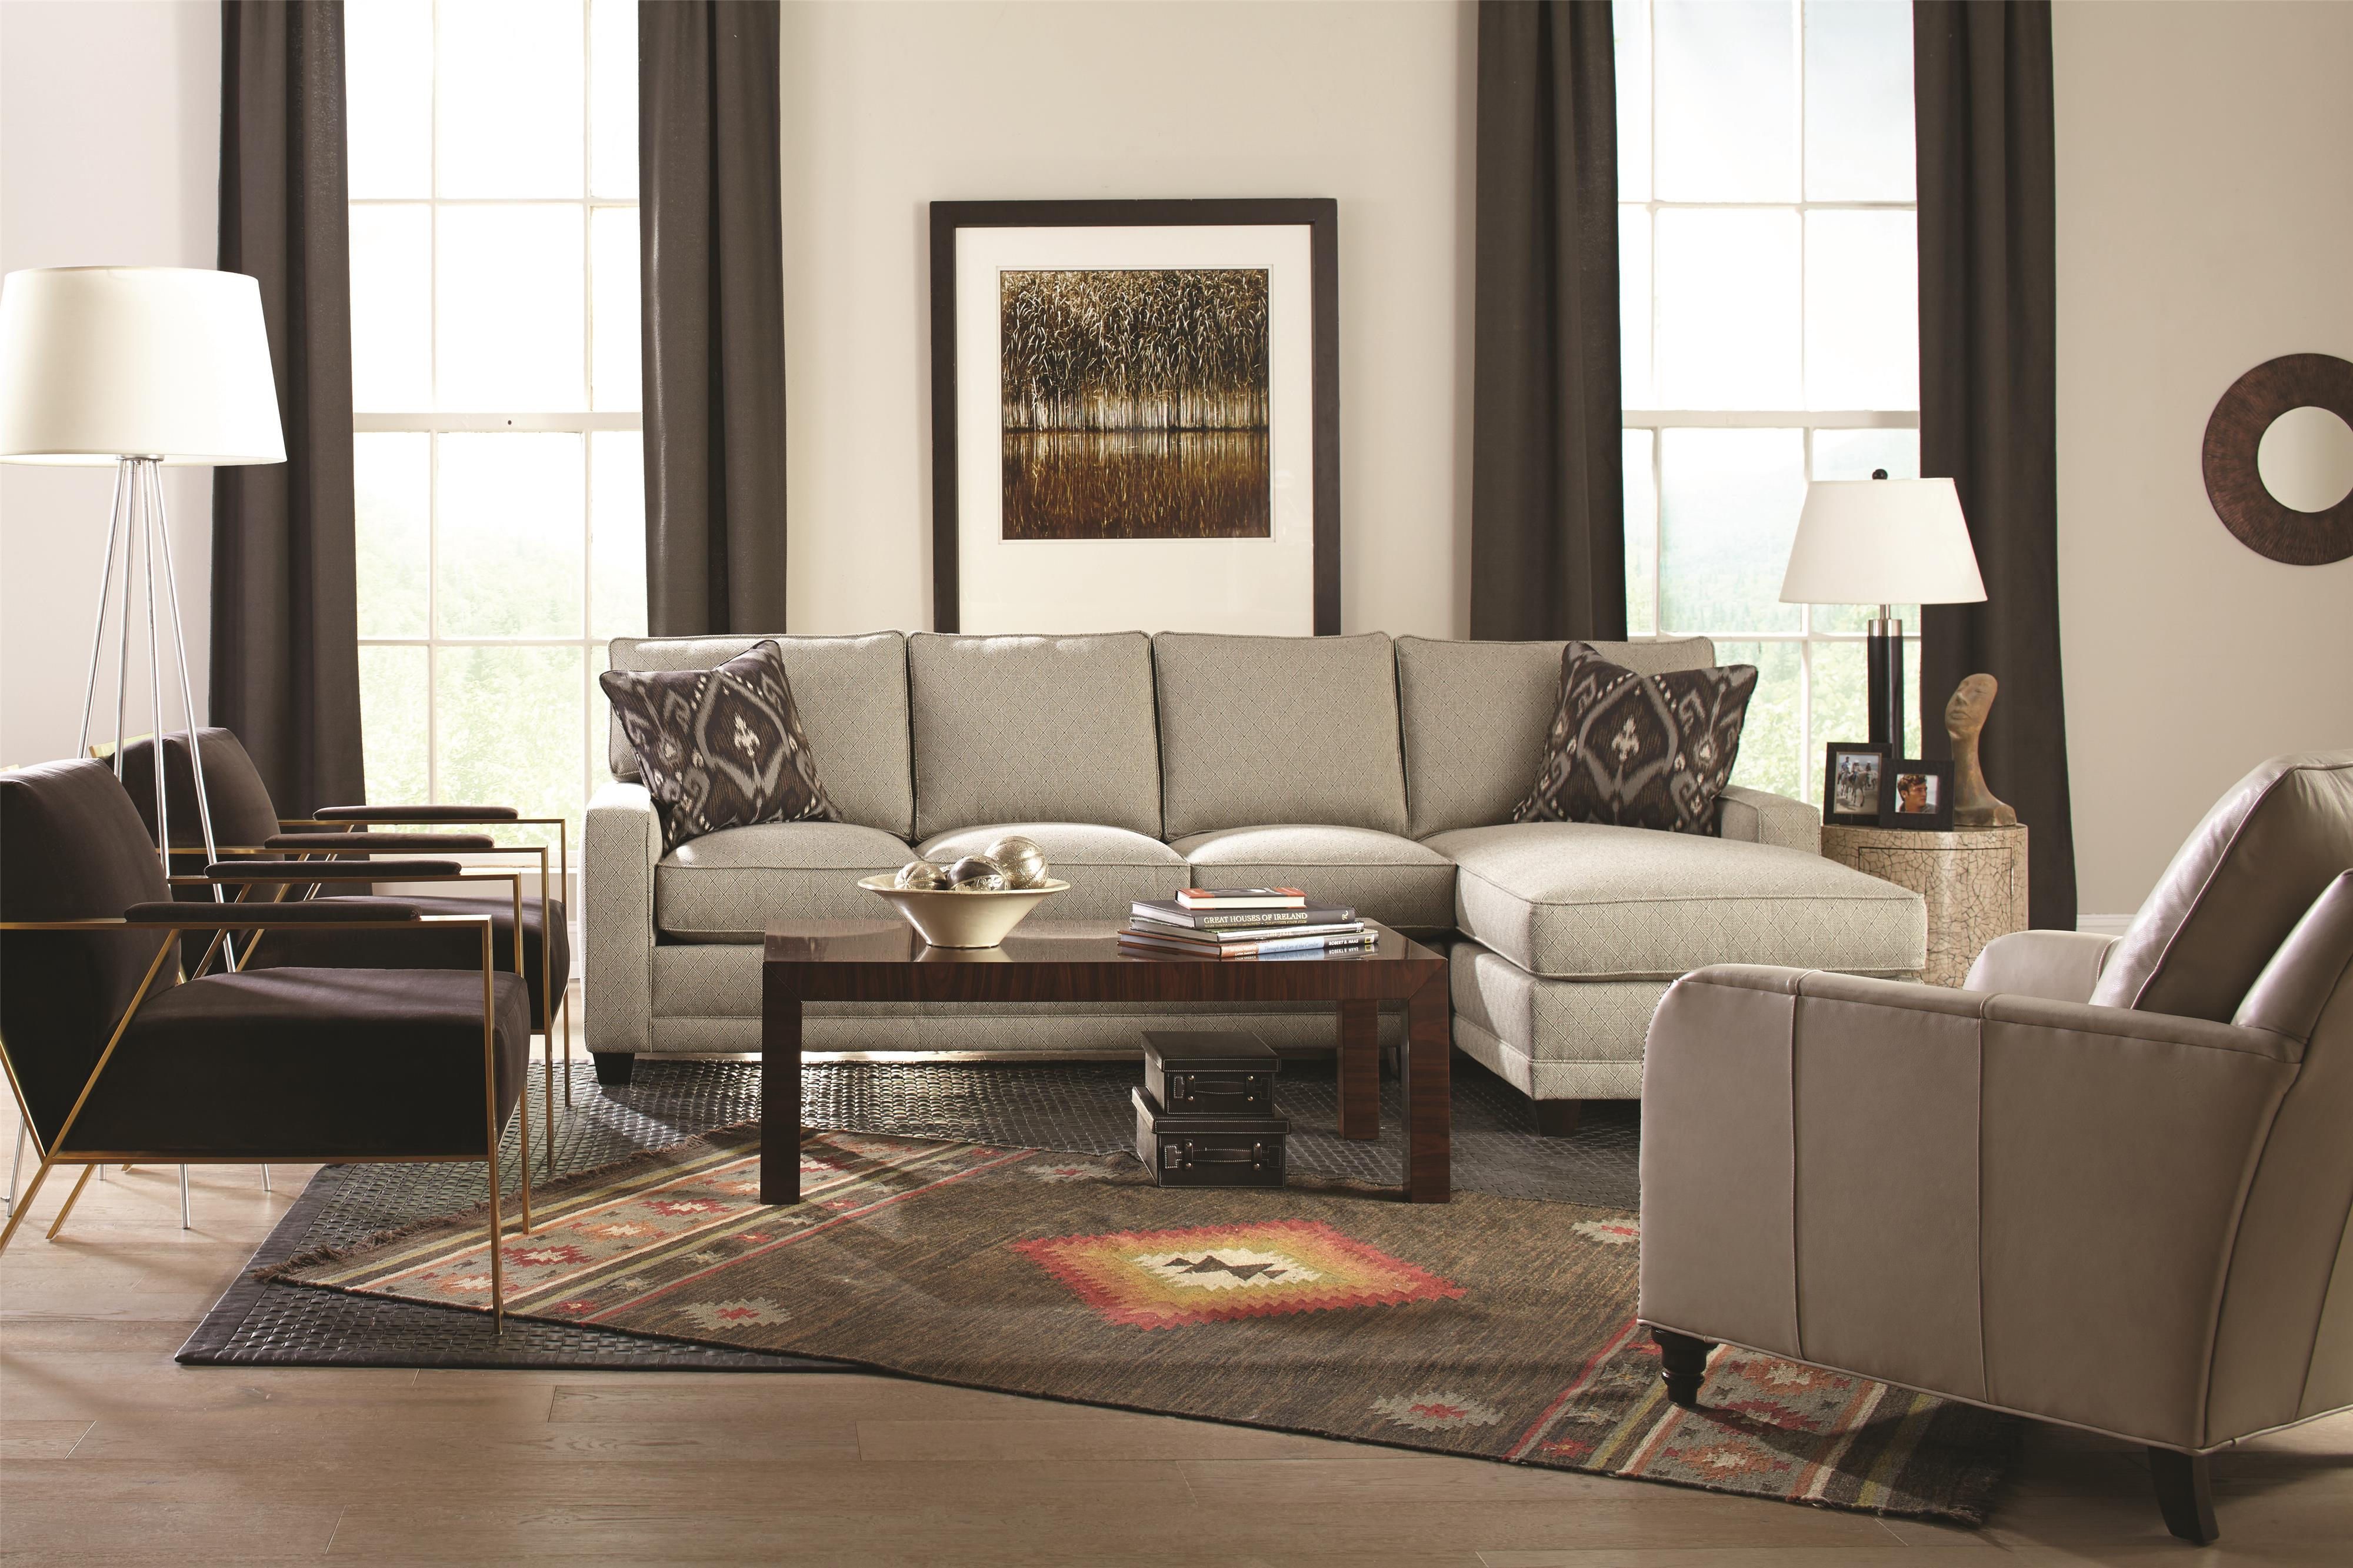 wheat sofa by Sprintz Furniture with brown cushions and carpet plus table standing lamp